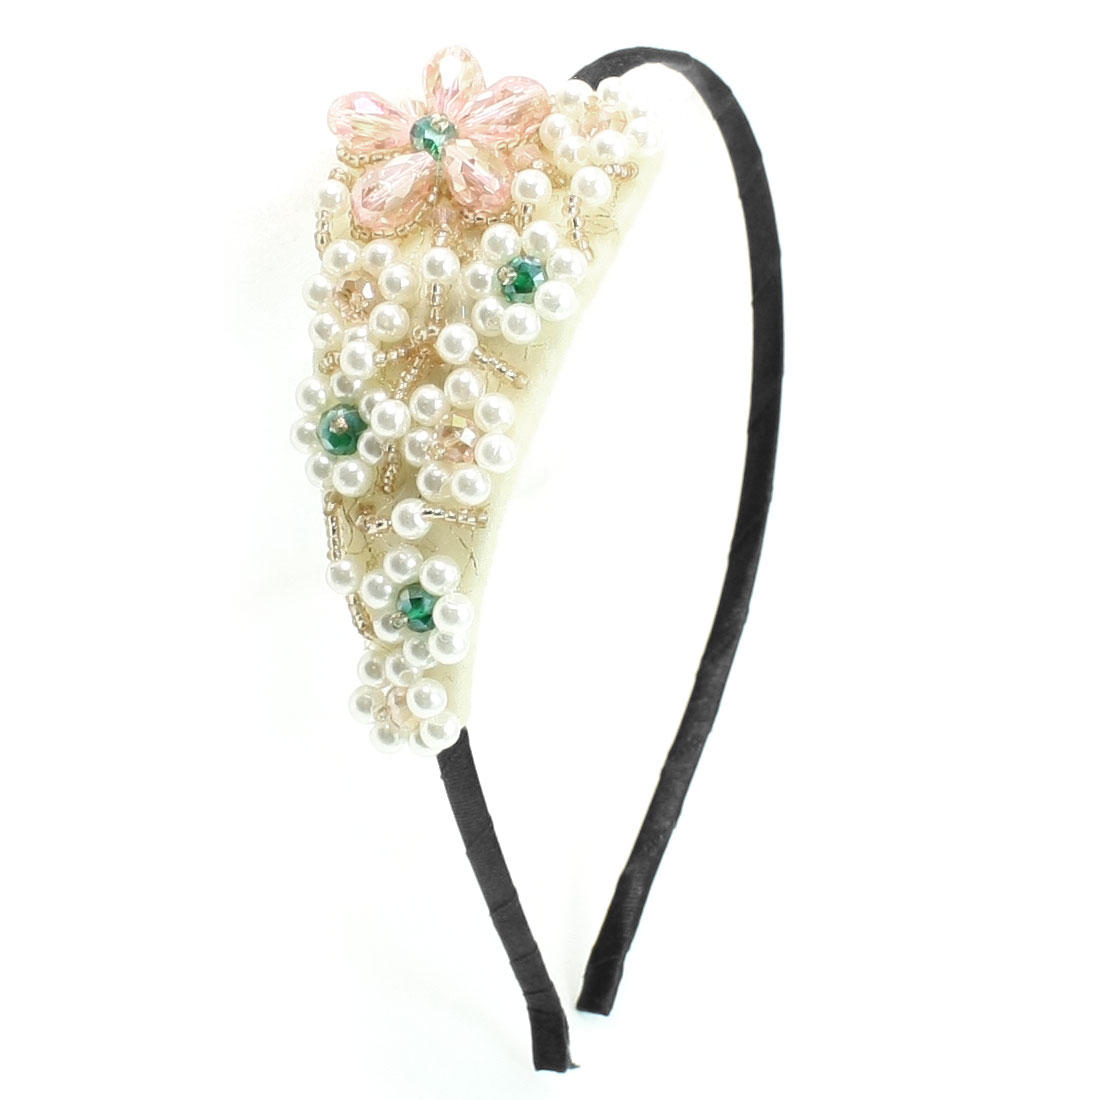 Light Pink Beads Leaf Shaped Headband Hair Band Decoration for Lady